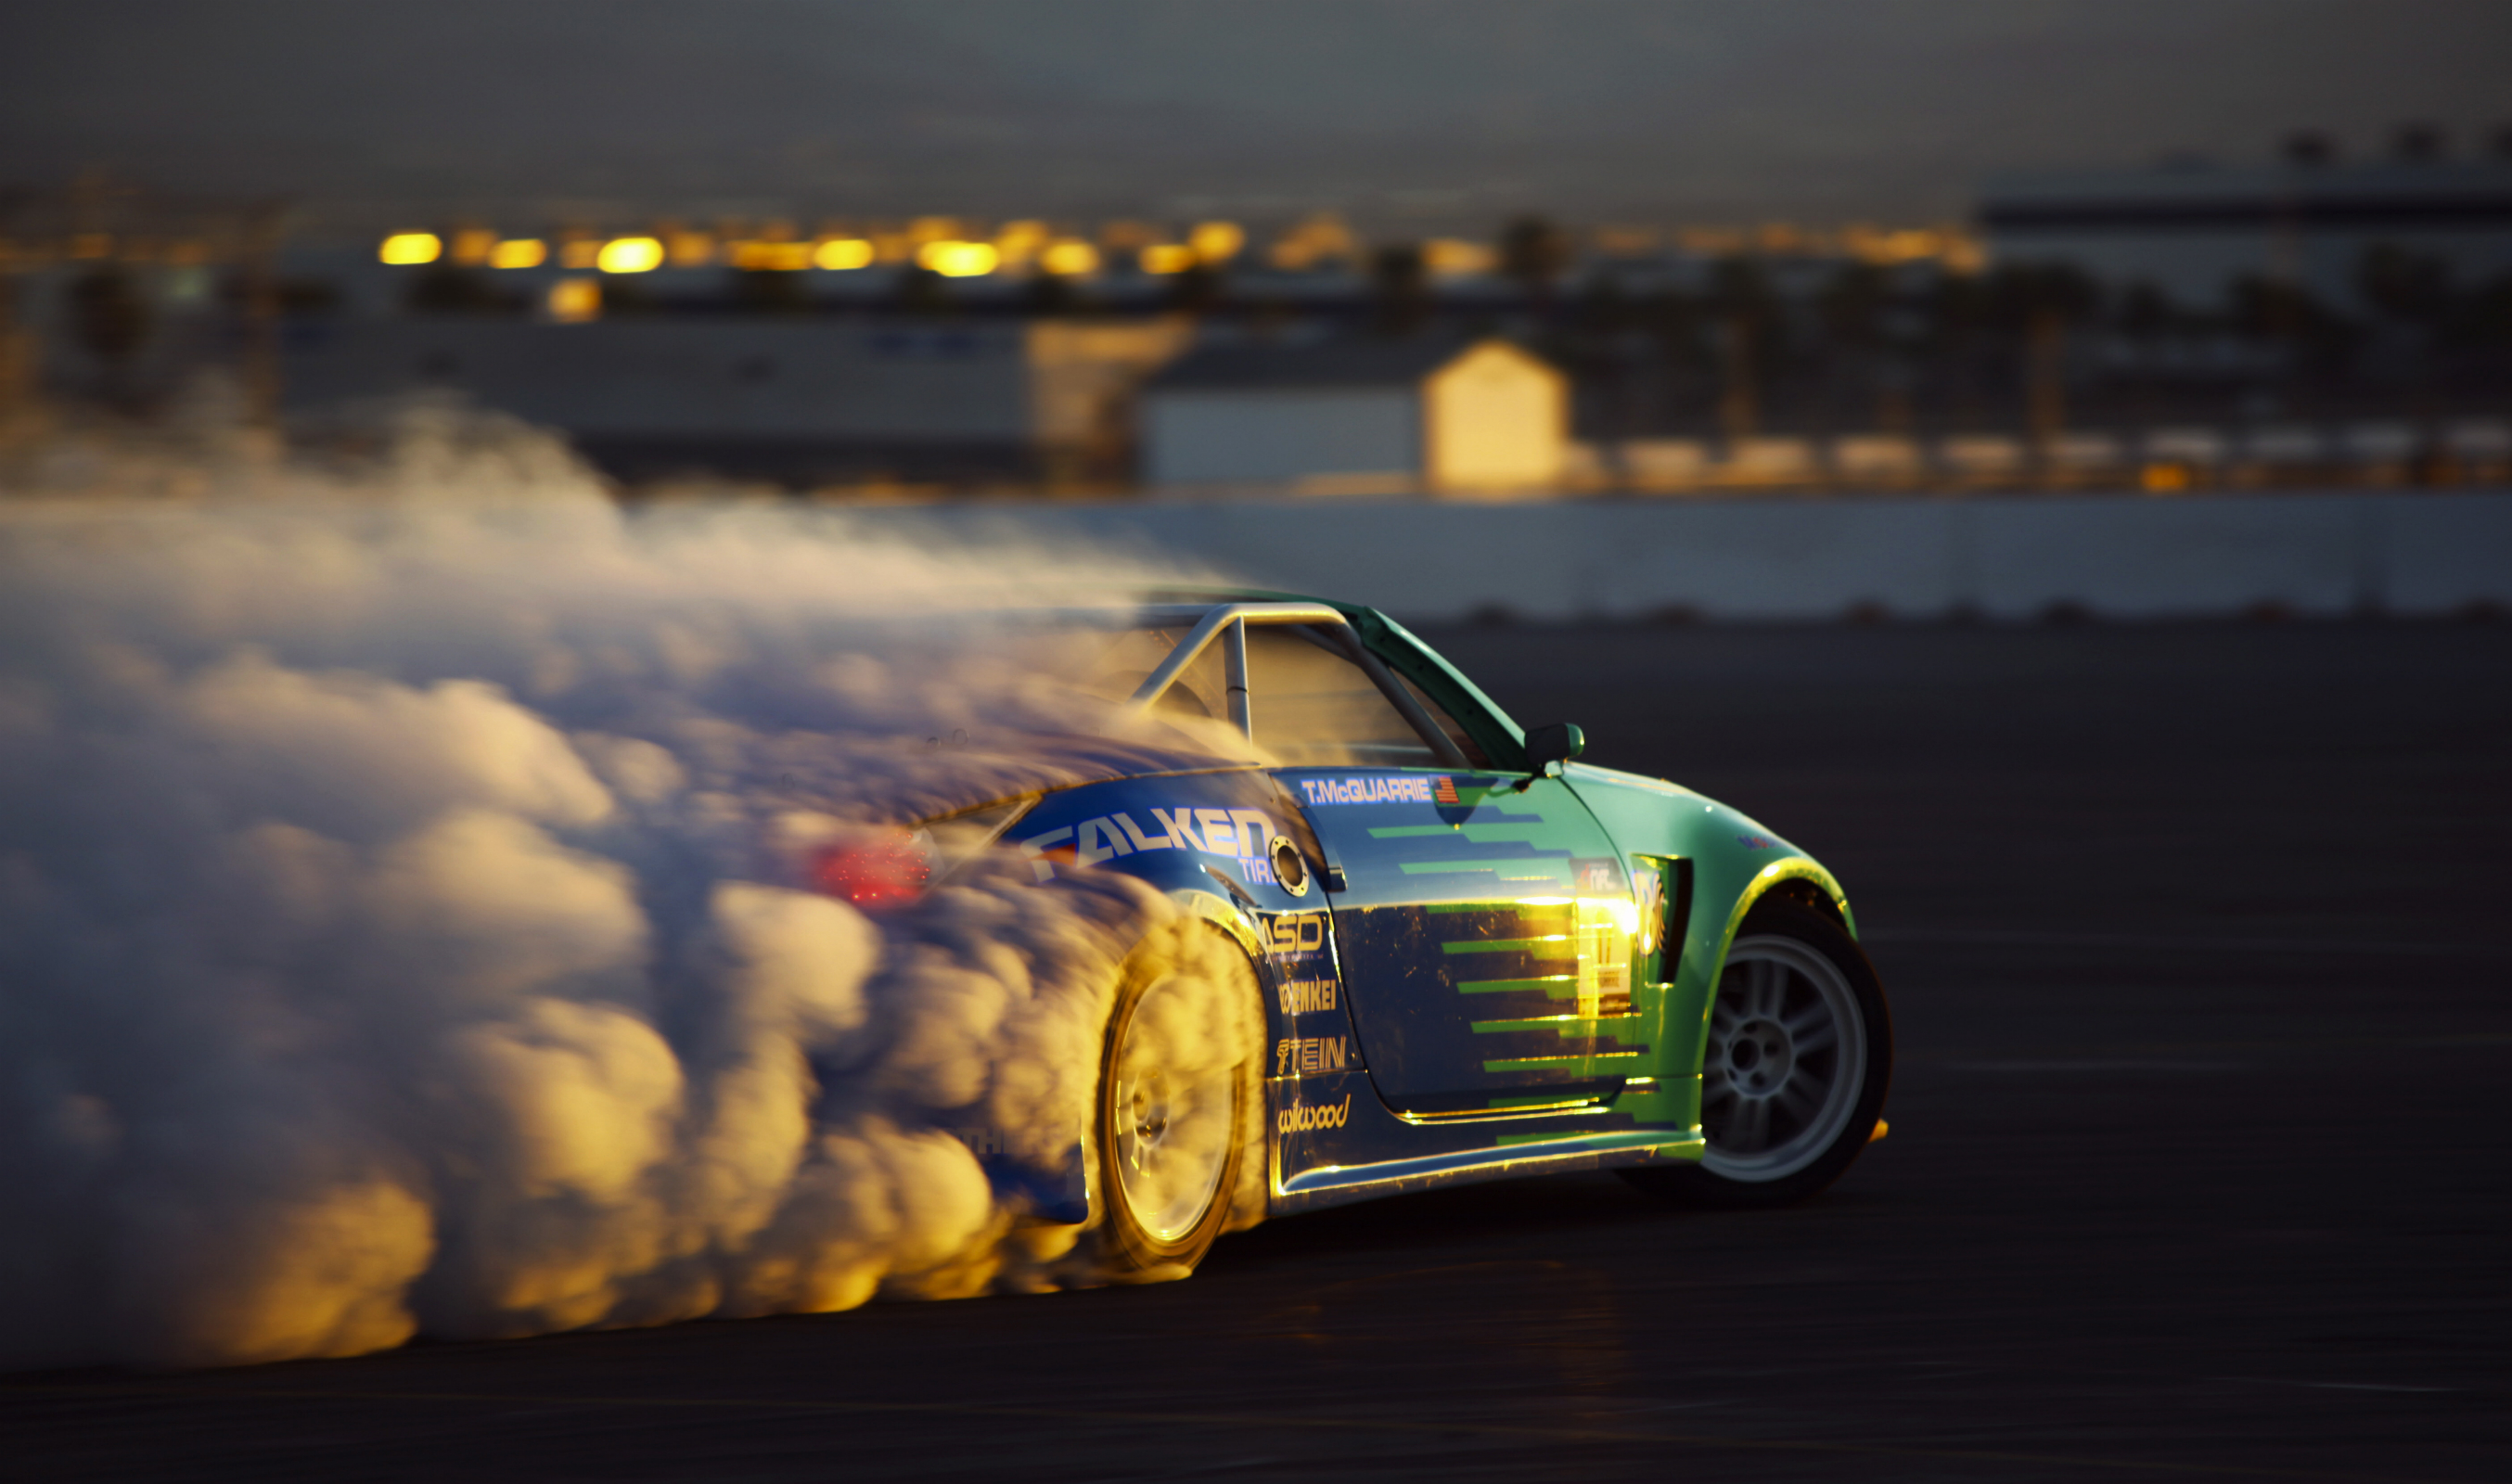 Speed Racing Car Wallpapers HD - Android Apps on Google Play